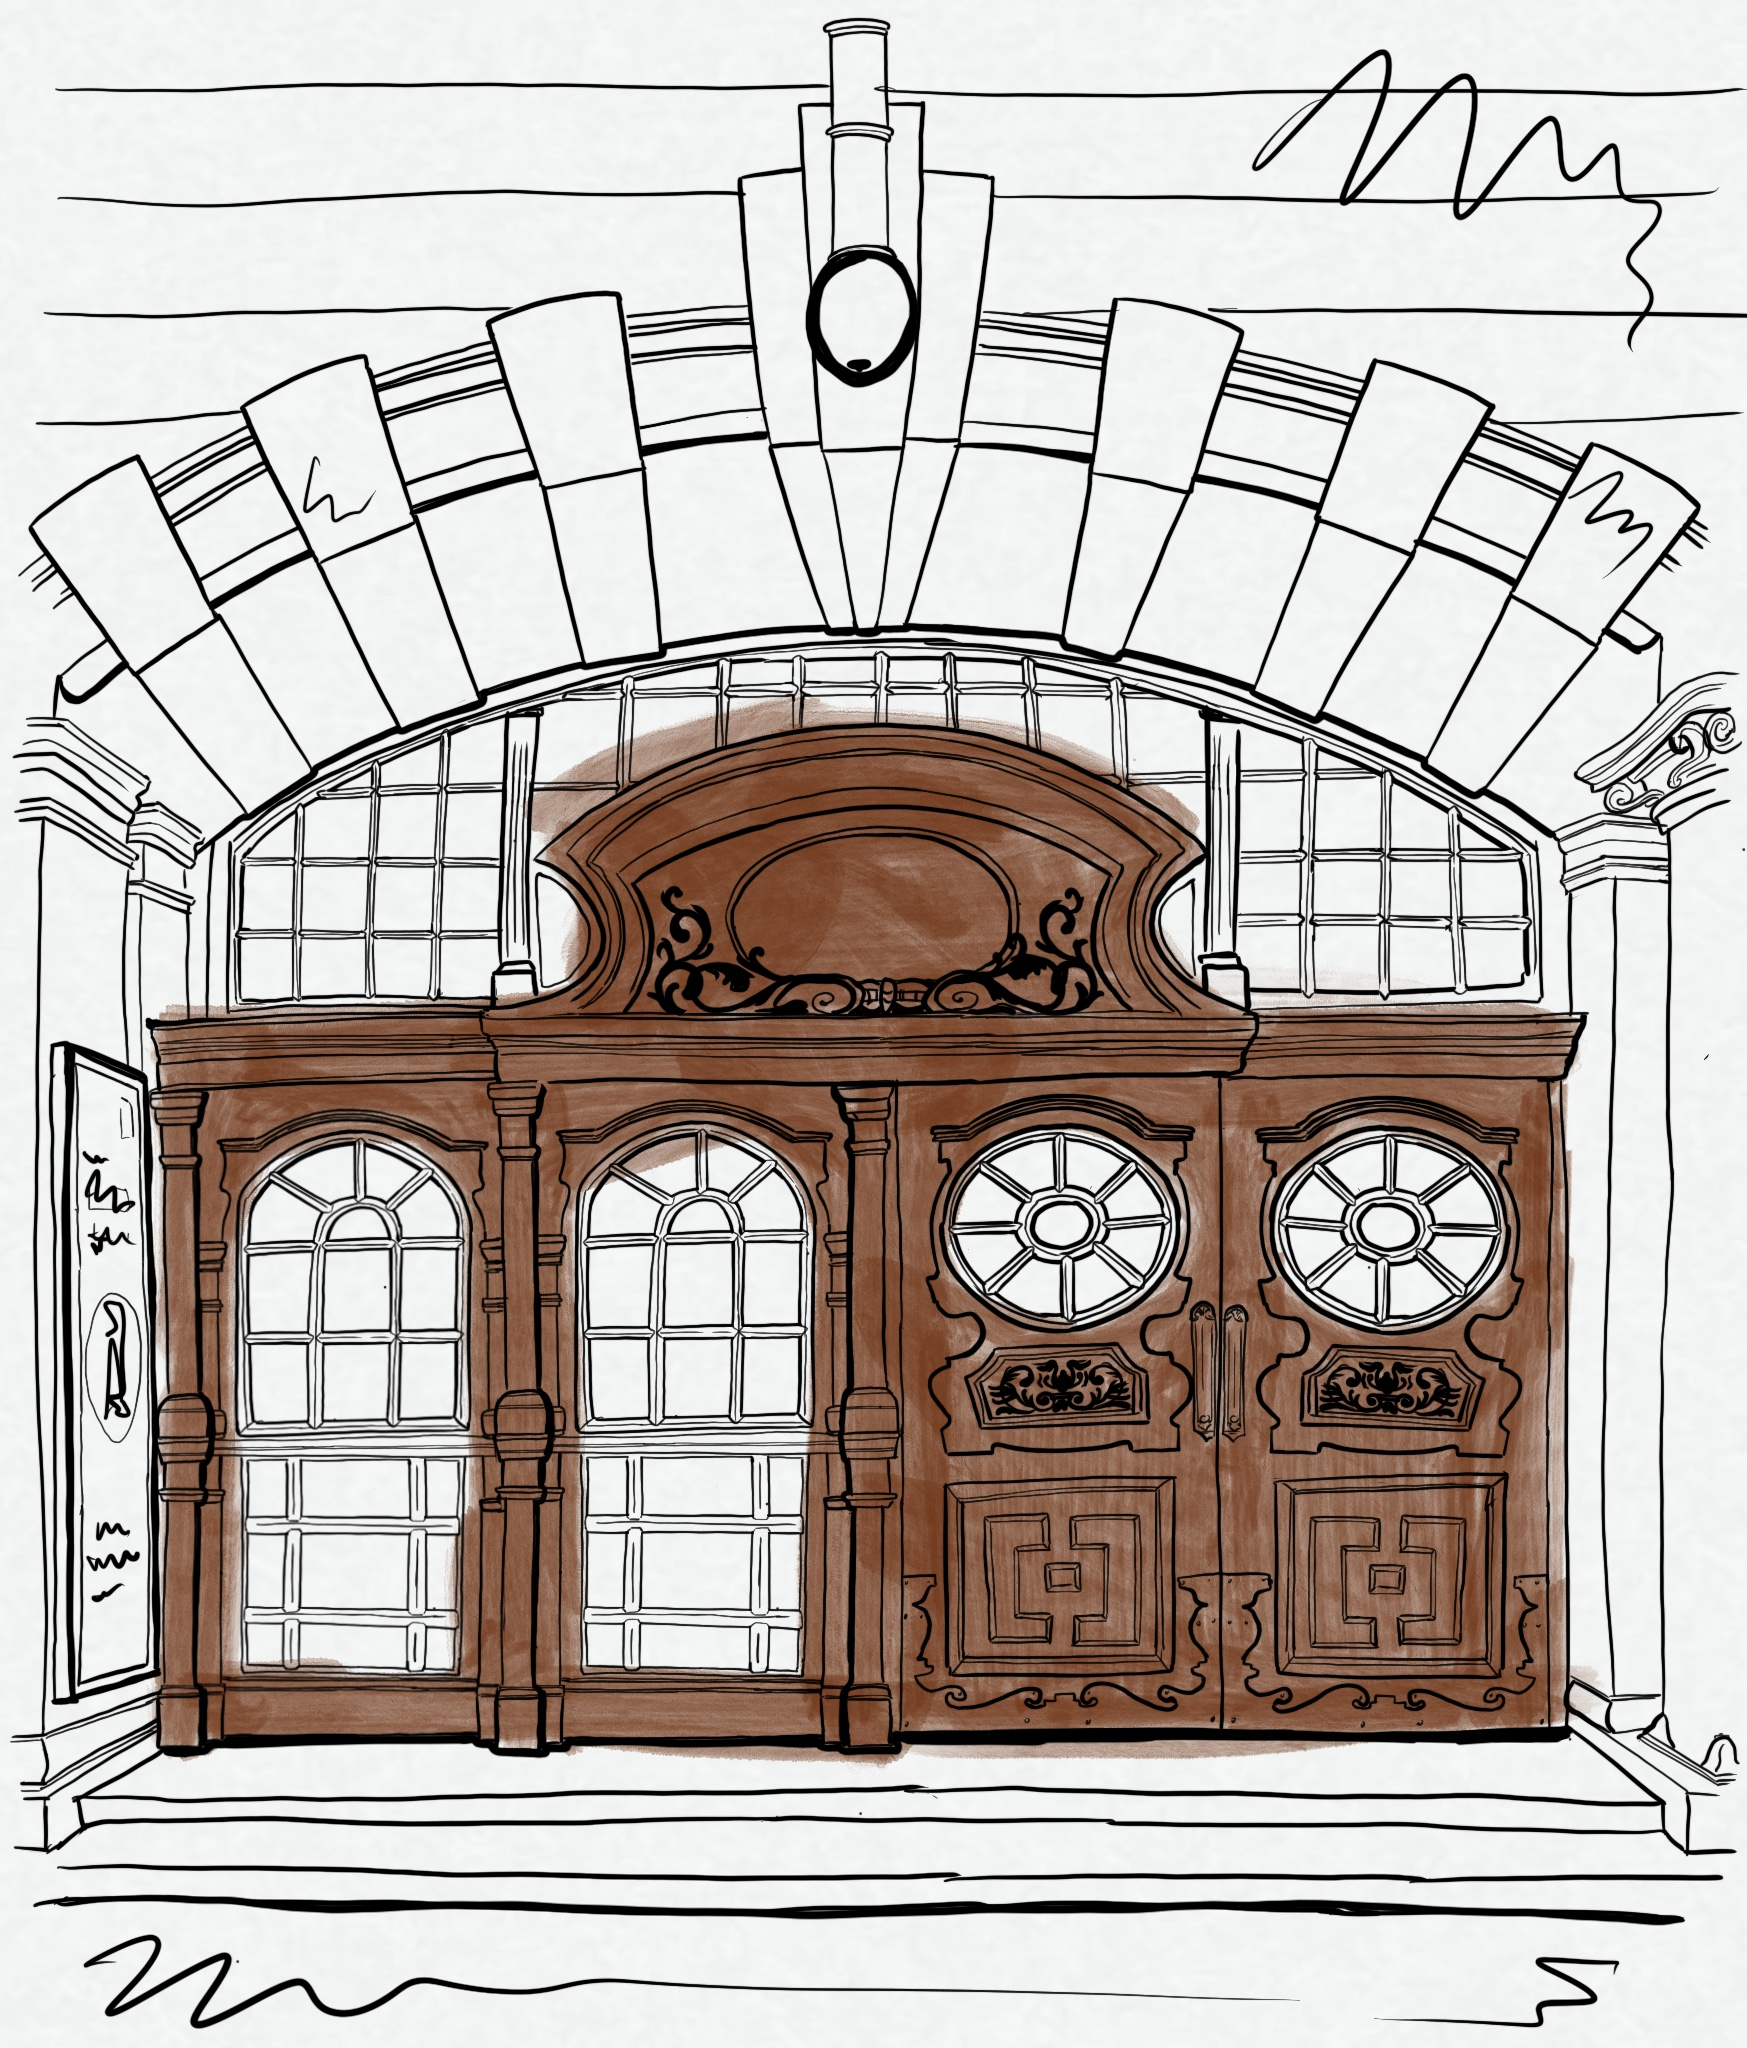 Artist's sketch of an ornate brown opera house doorway